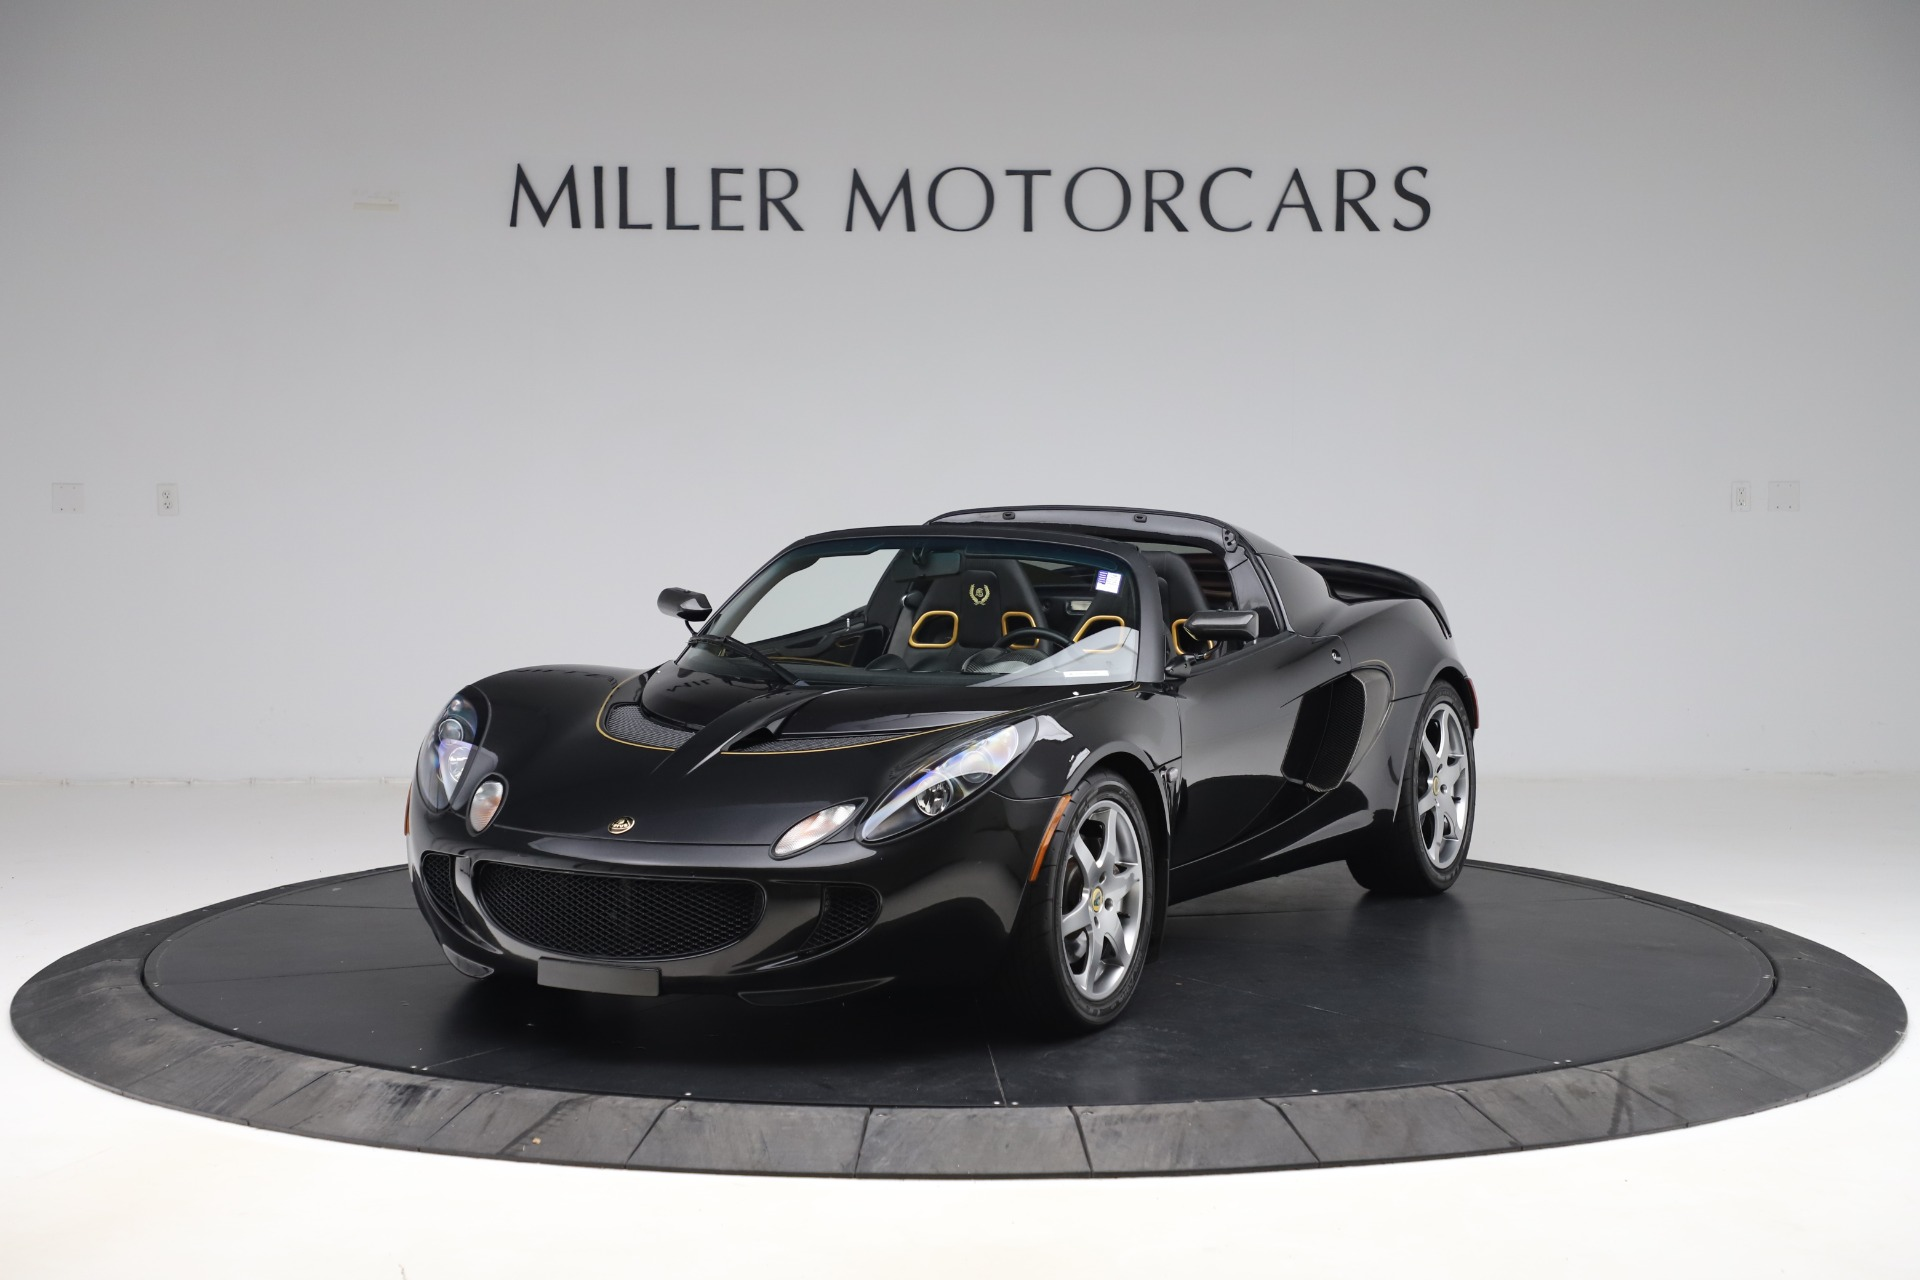 Used 2007 Lotus Elise Type 72D for sale $39,900 at McLaren Greenwich in Greenwich CT 06830 1